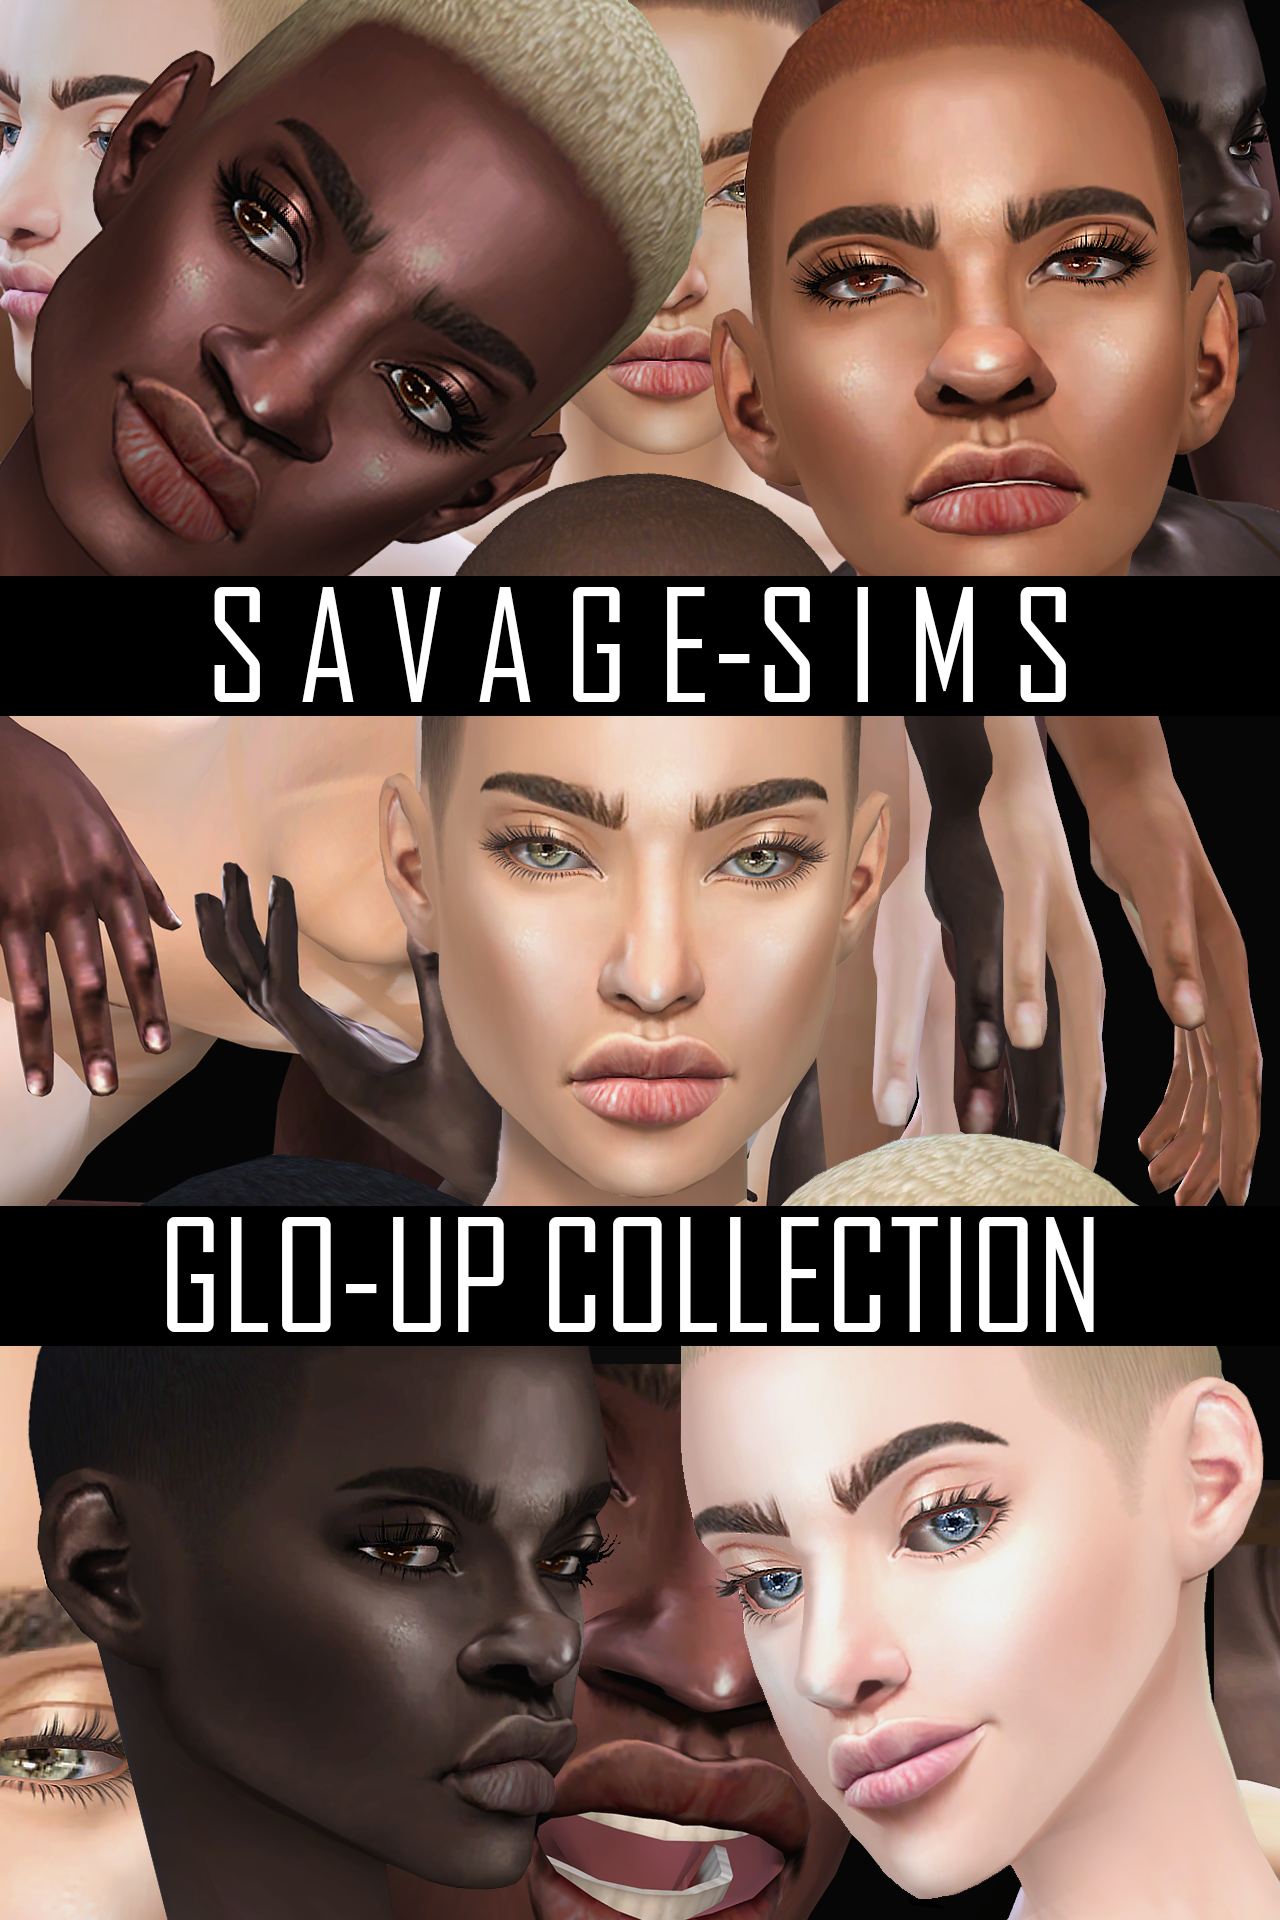 """savage-sims: """" -ALL COLORS/STYLES NOT SHOWN- -GLO UP"""